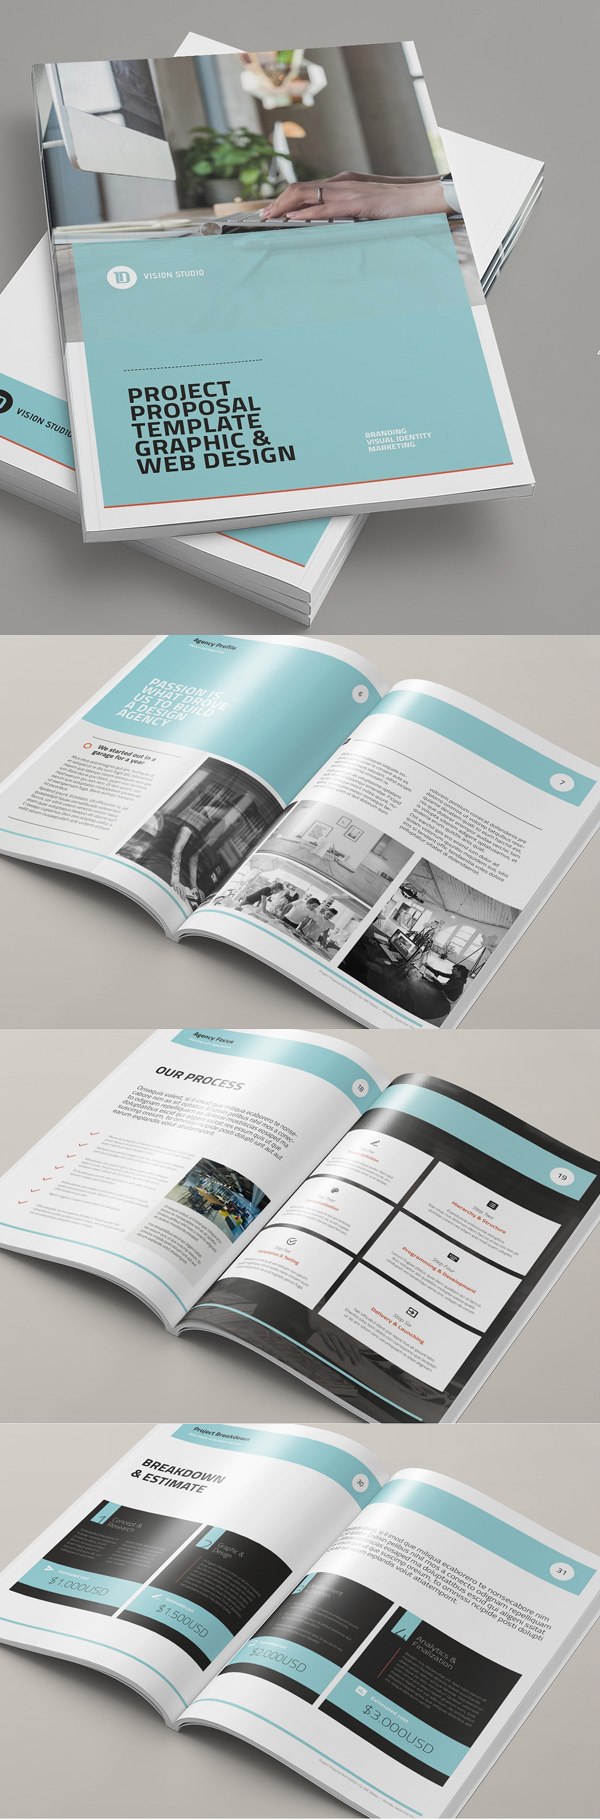 100 Professional Corporate Brochure Templates - 30